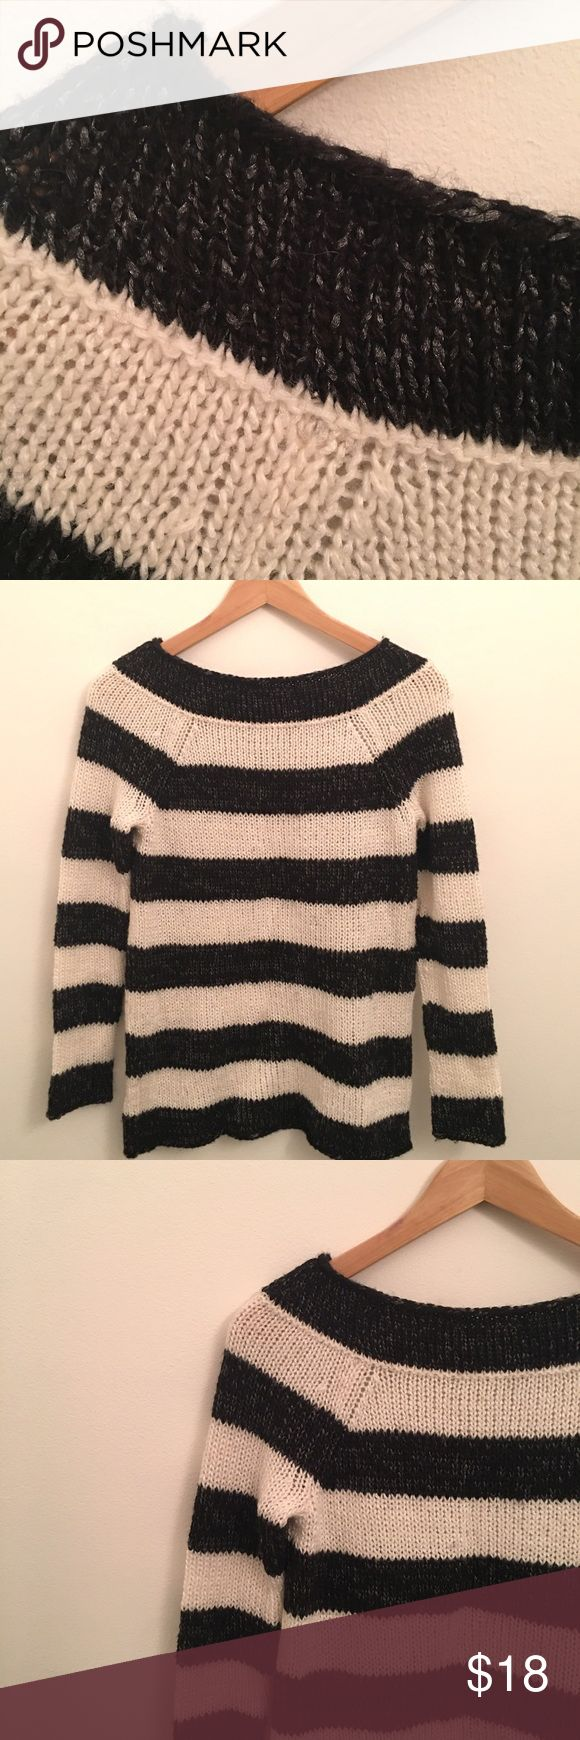 "Ann Taylor Bold Stripe Petite Sweater SP Ann Taylor Bold Stripe Petite Sweater SP. Black/Off White with silvery Metallic thread. Bust: 33""/34"". 37% Acrylic 30% Polyester 28% Wool 4% Mohair. Dry Clean Only ~All items come from a pet and smoke free home~ EUC Ann Taylor Sweaters Crew & Scoop Necks"